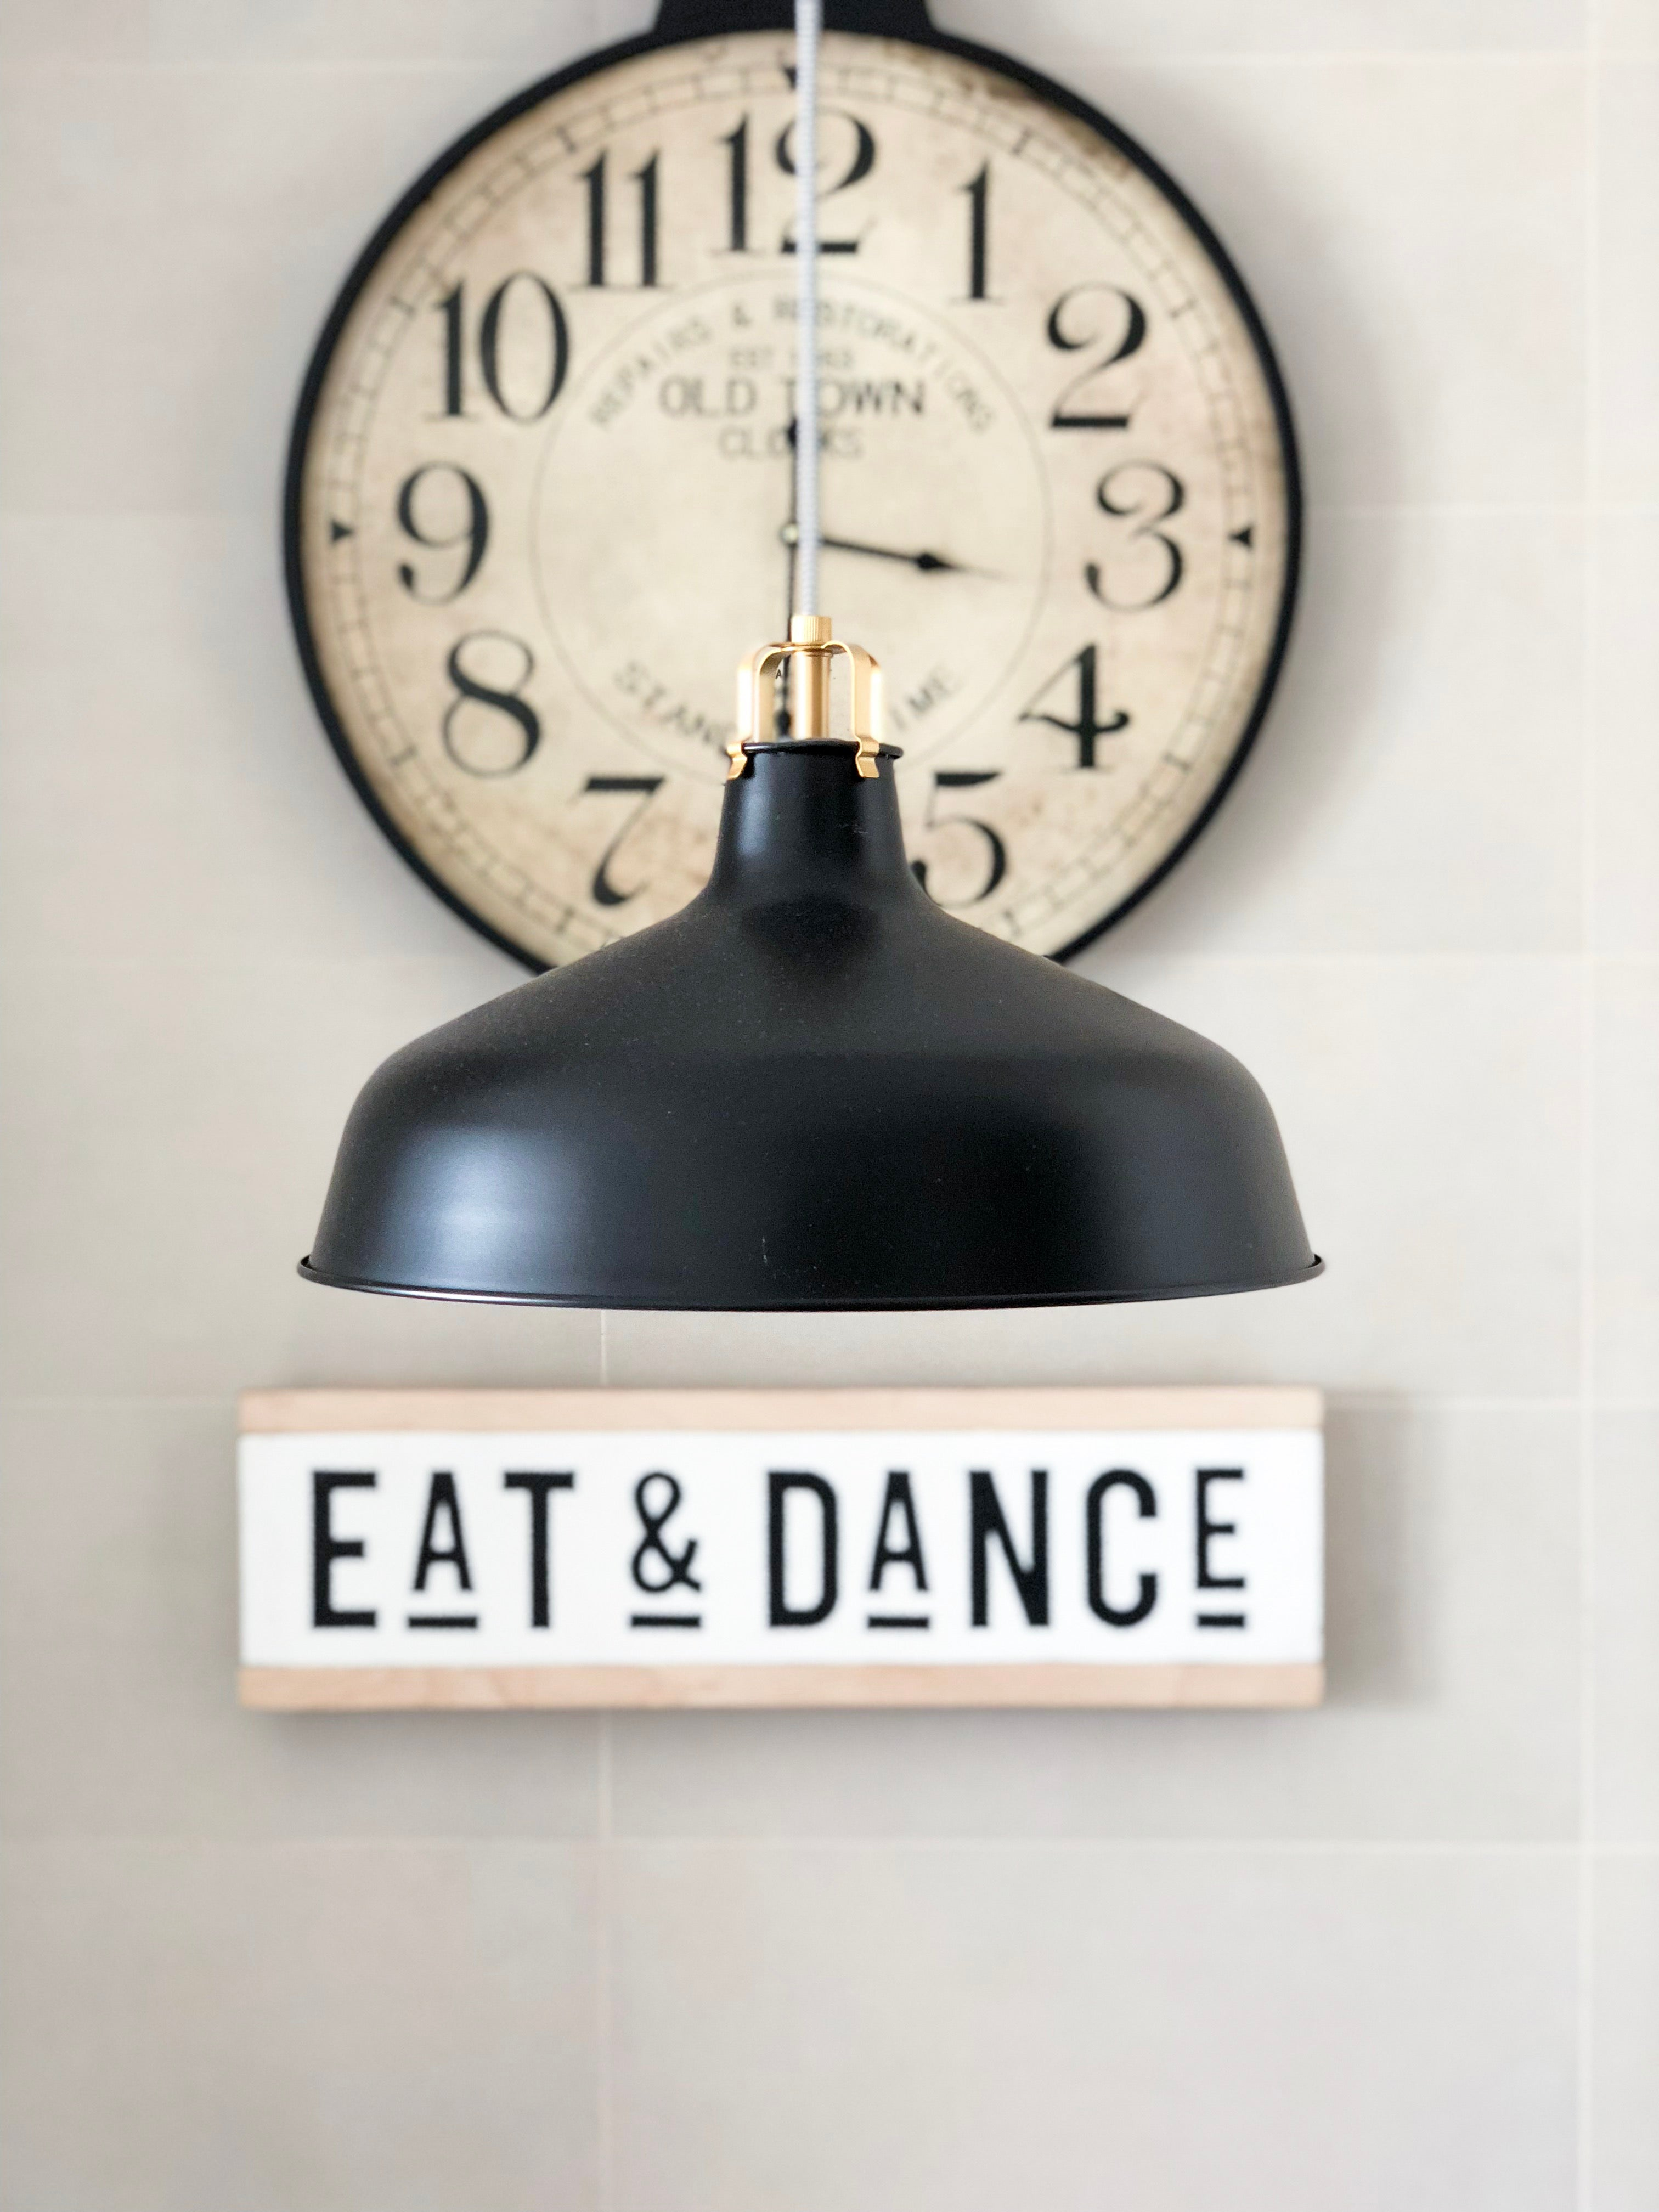 CARTEL ESTAMPADO A MANO EAT & DANCE NORDIC